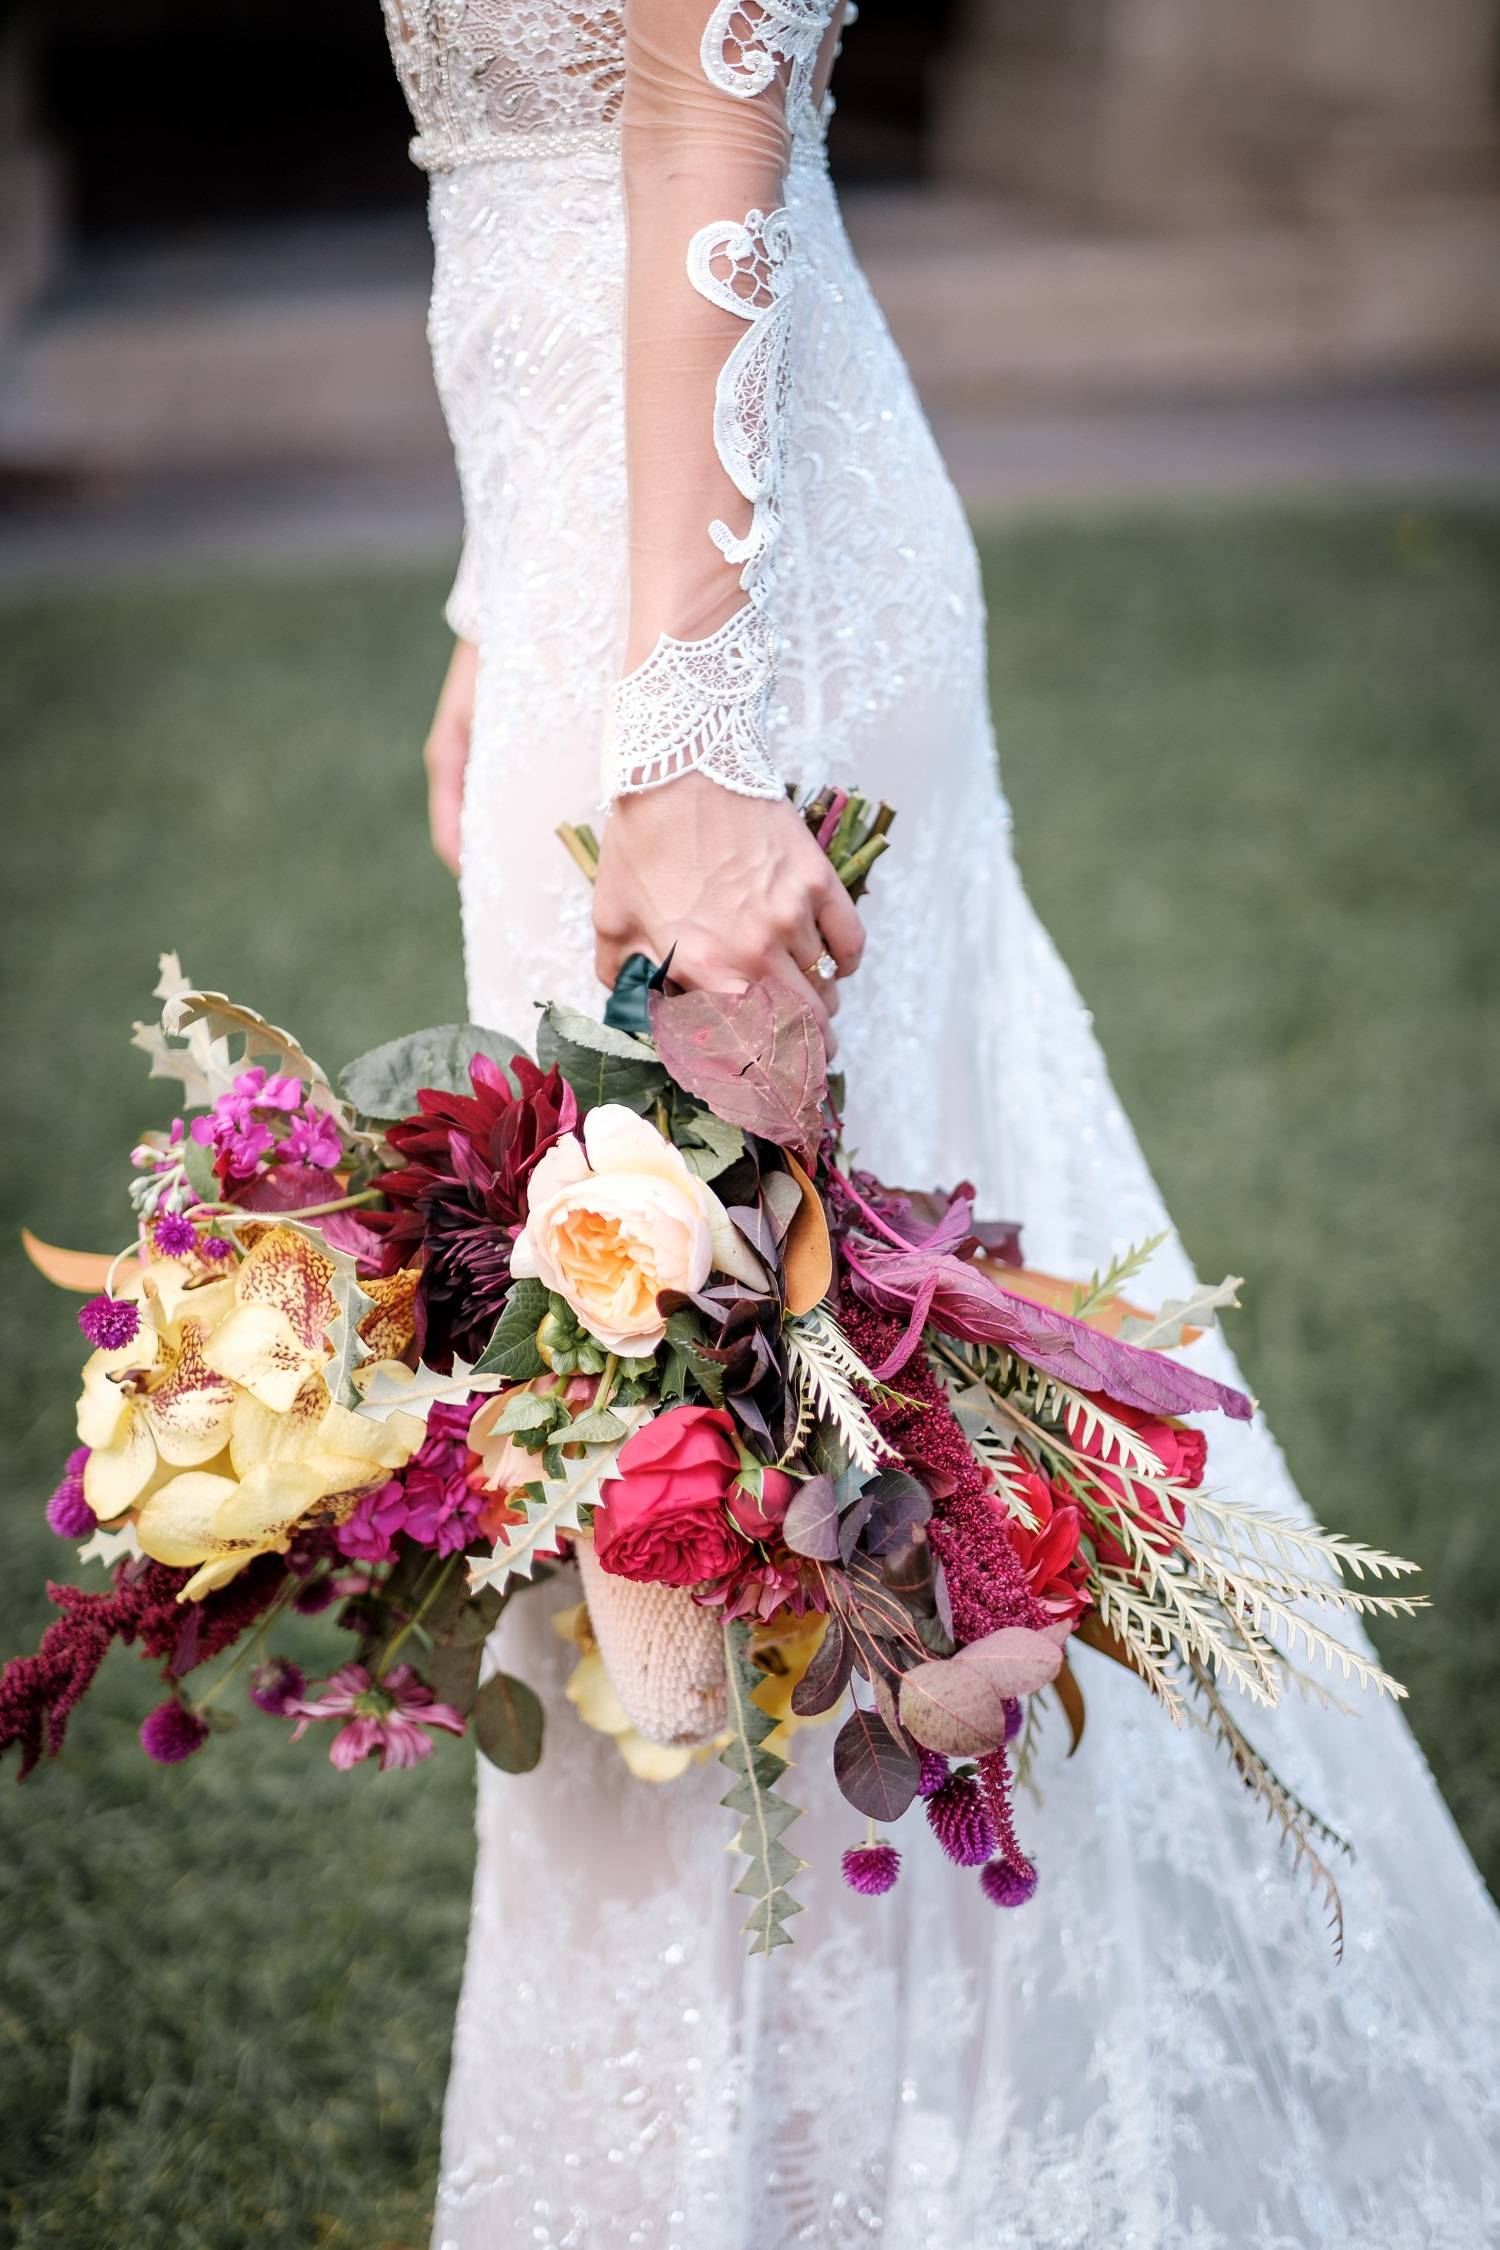 La Luna colorful wedding photographed by Erich Camping